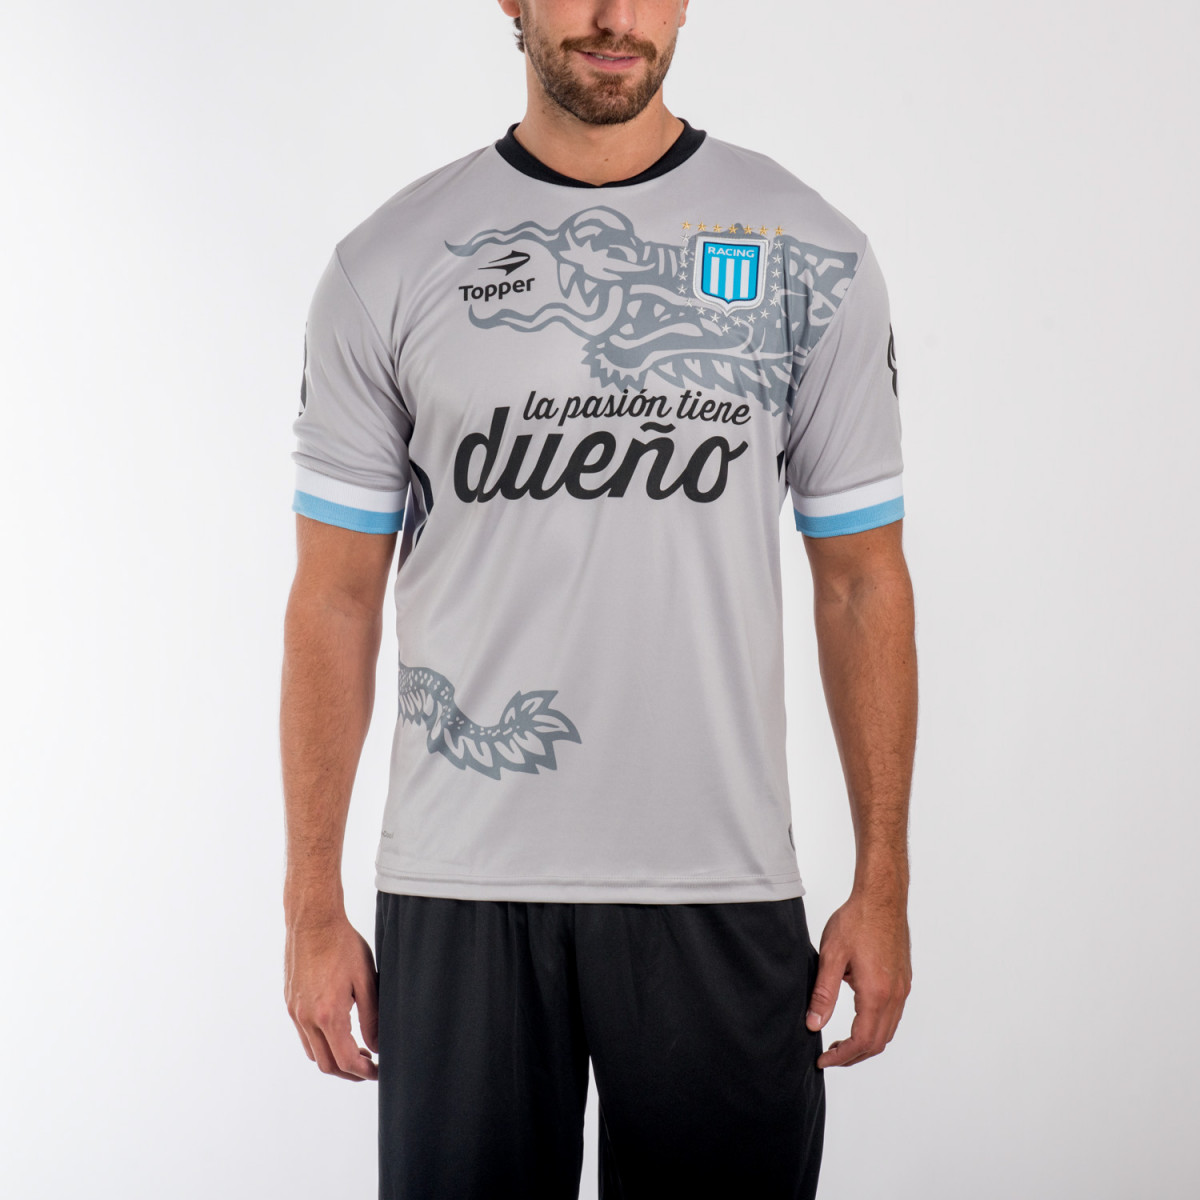 CAMISETA TOPPER RACING 15 ALT. III ARQUERO